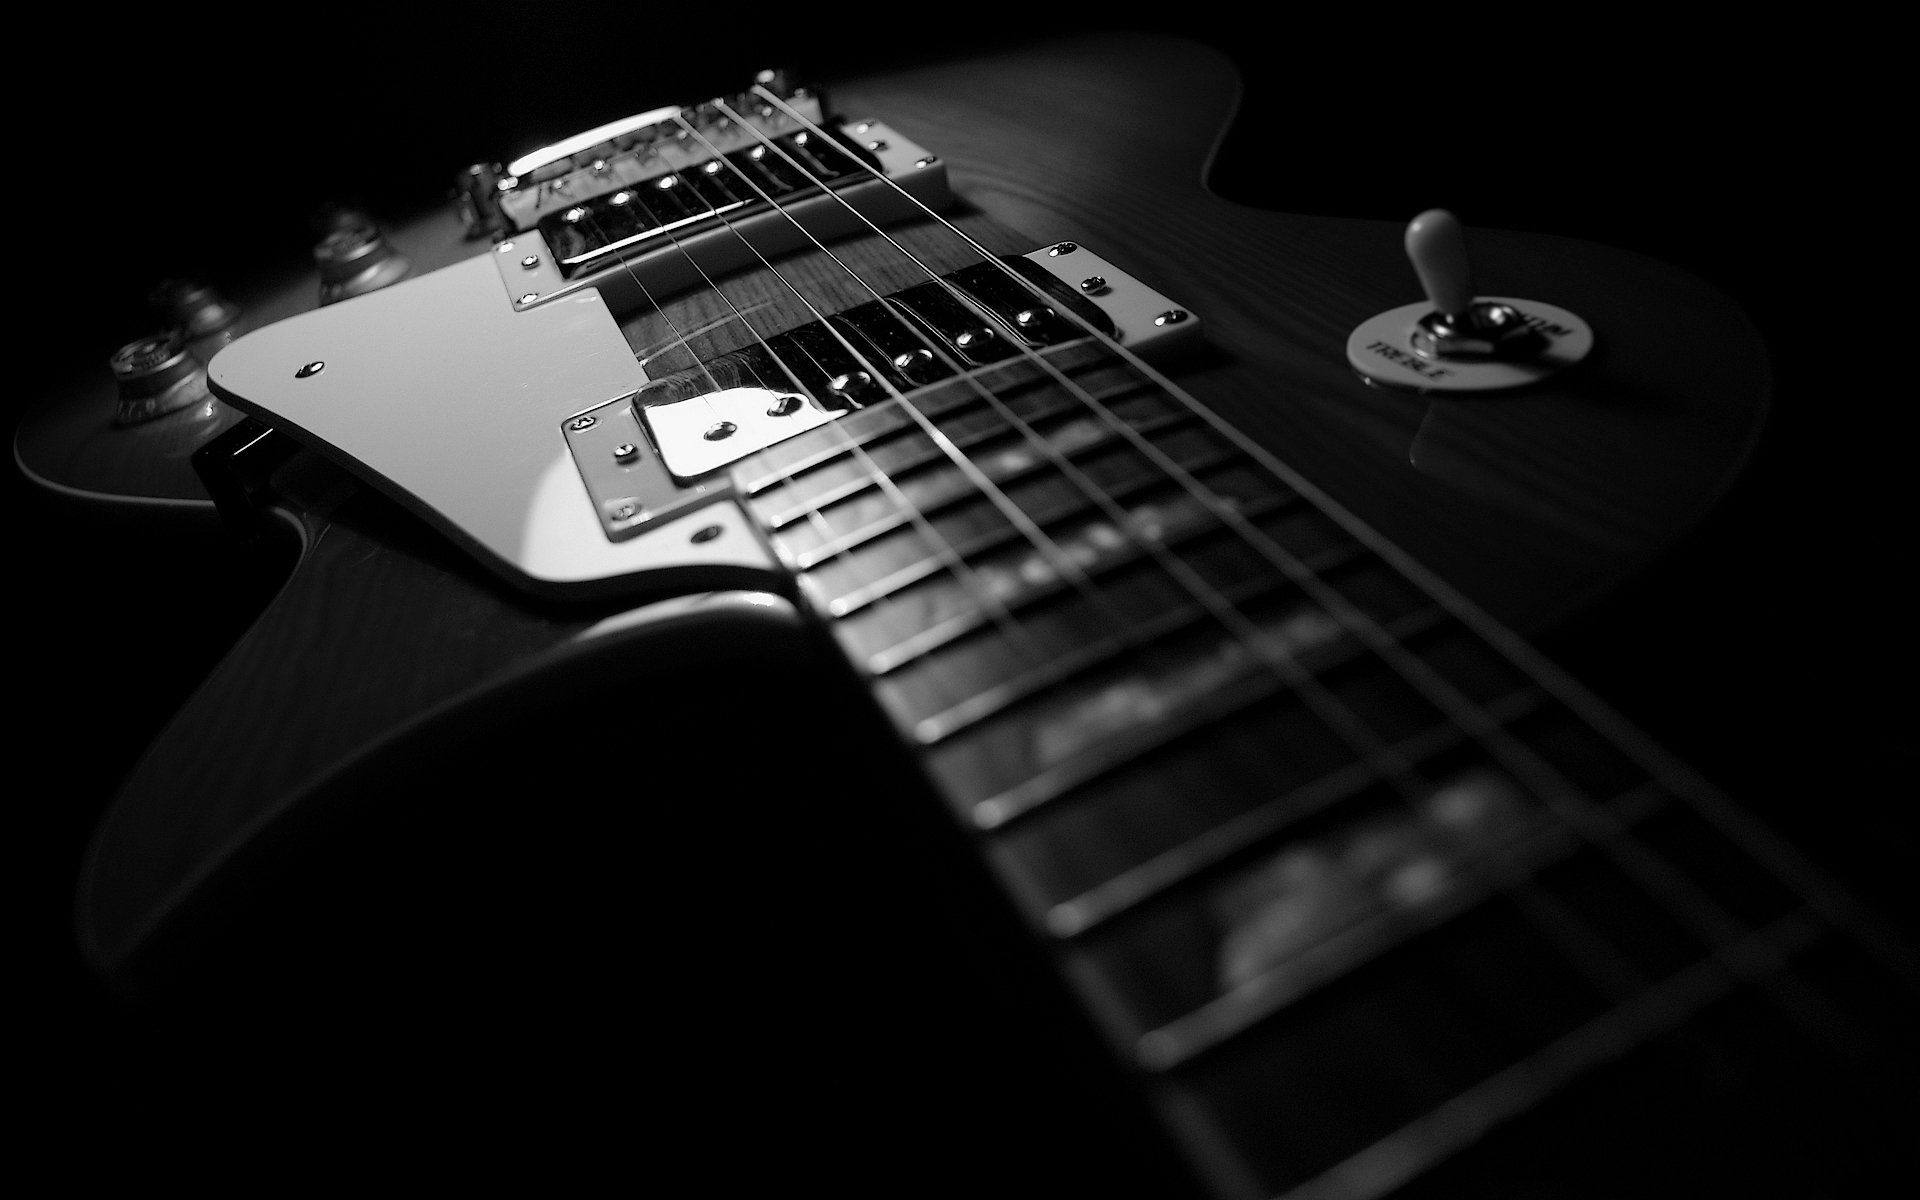 Wallpaper Of Guitar